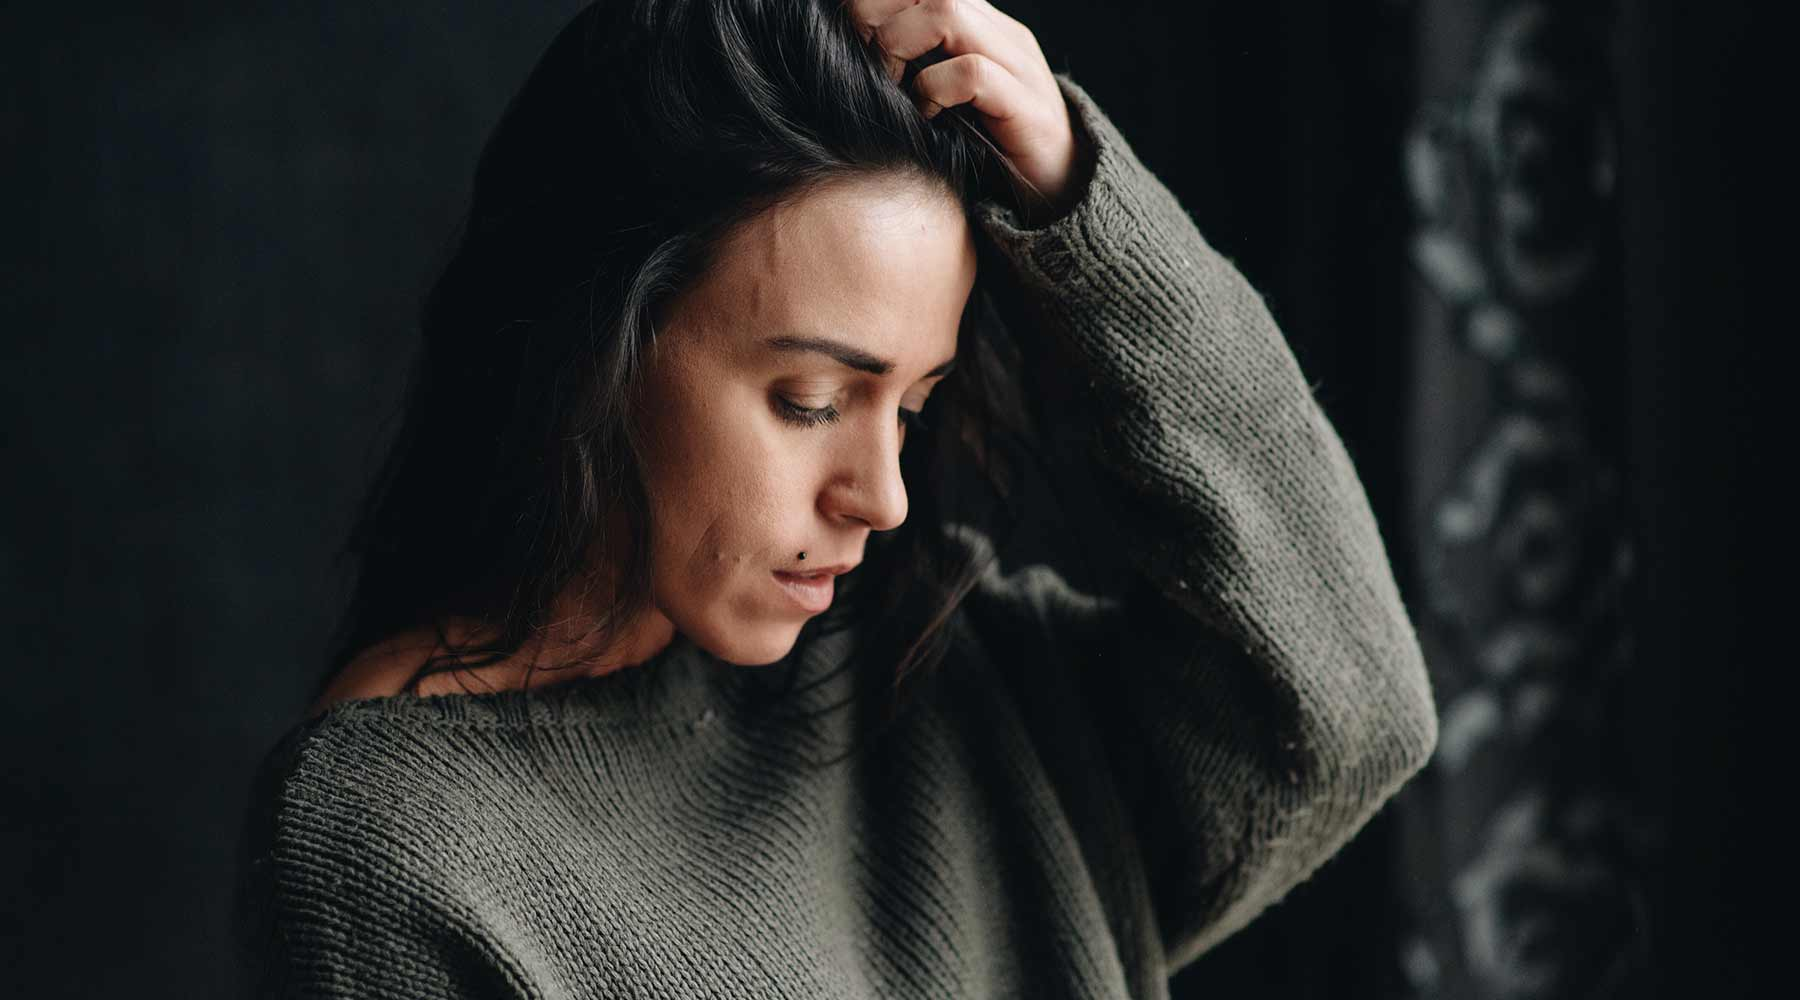 Woman in moss green sweater running hand through long dark hair, showing signs of worry, tiredness, anxiety.